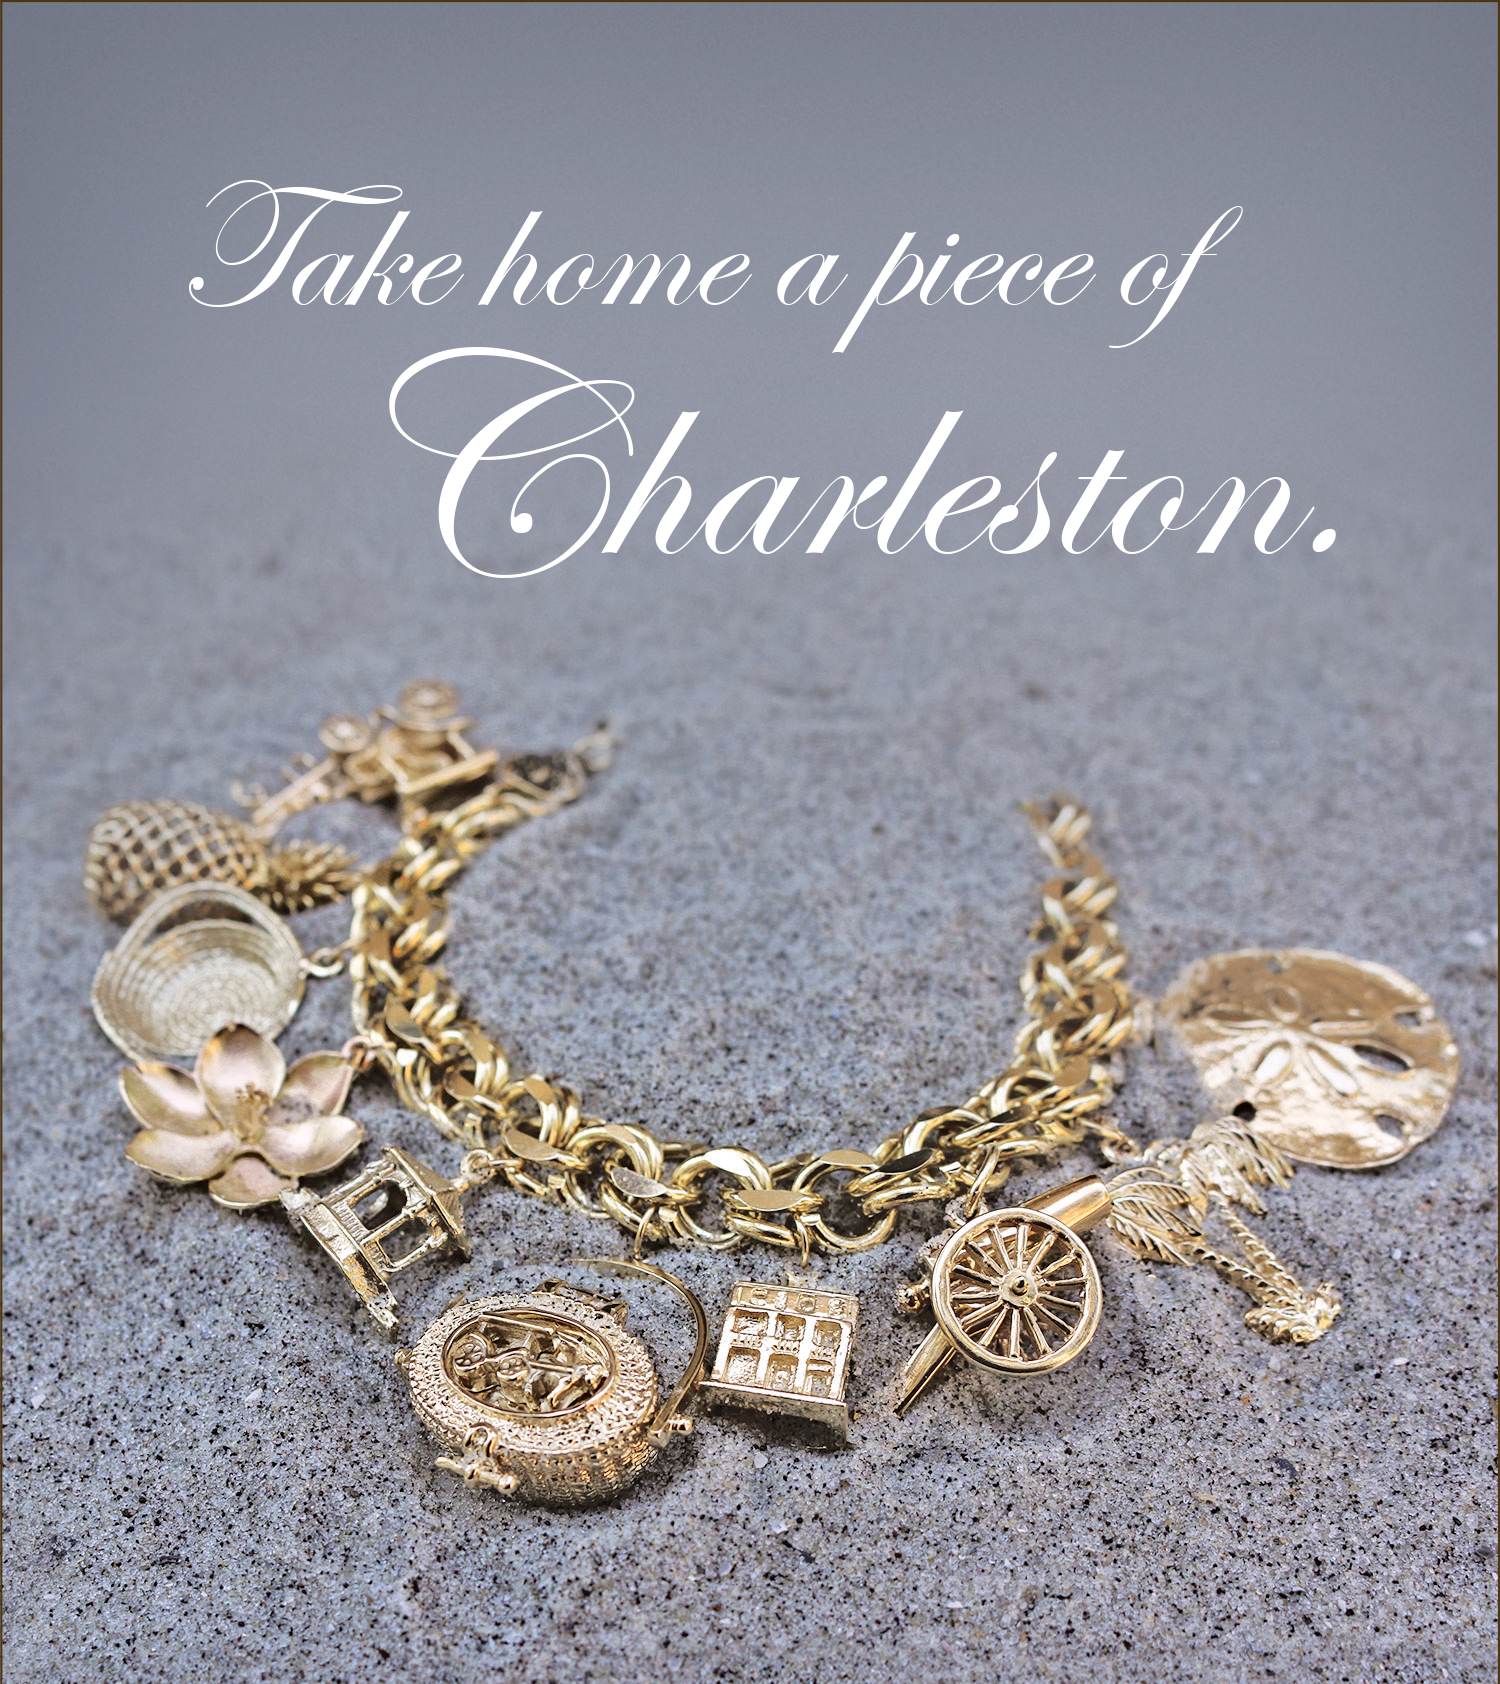 We Invite You To Come Our 14k Gold Charleston Charms Many Of Which Are